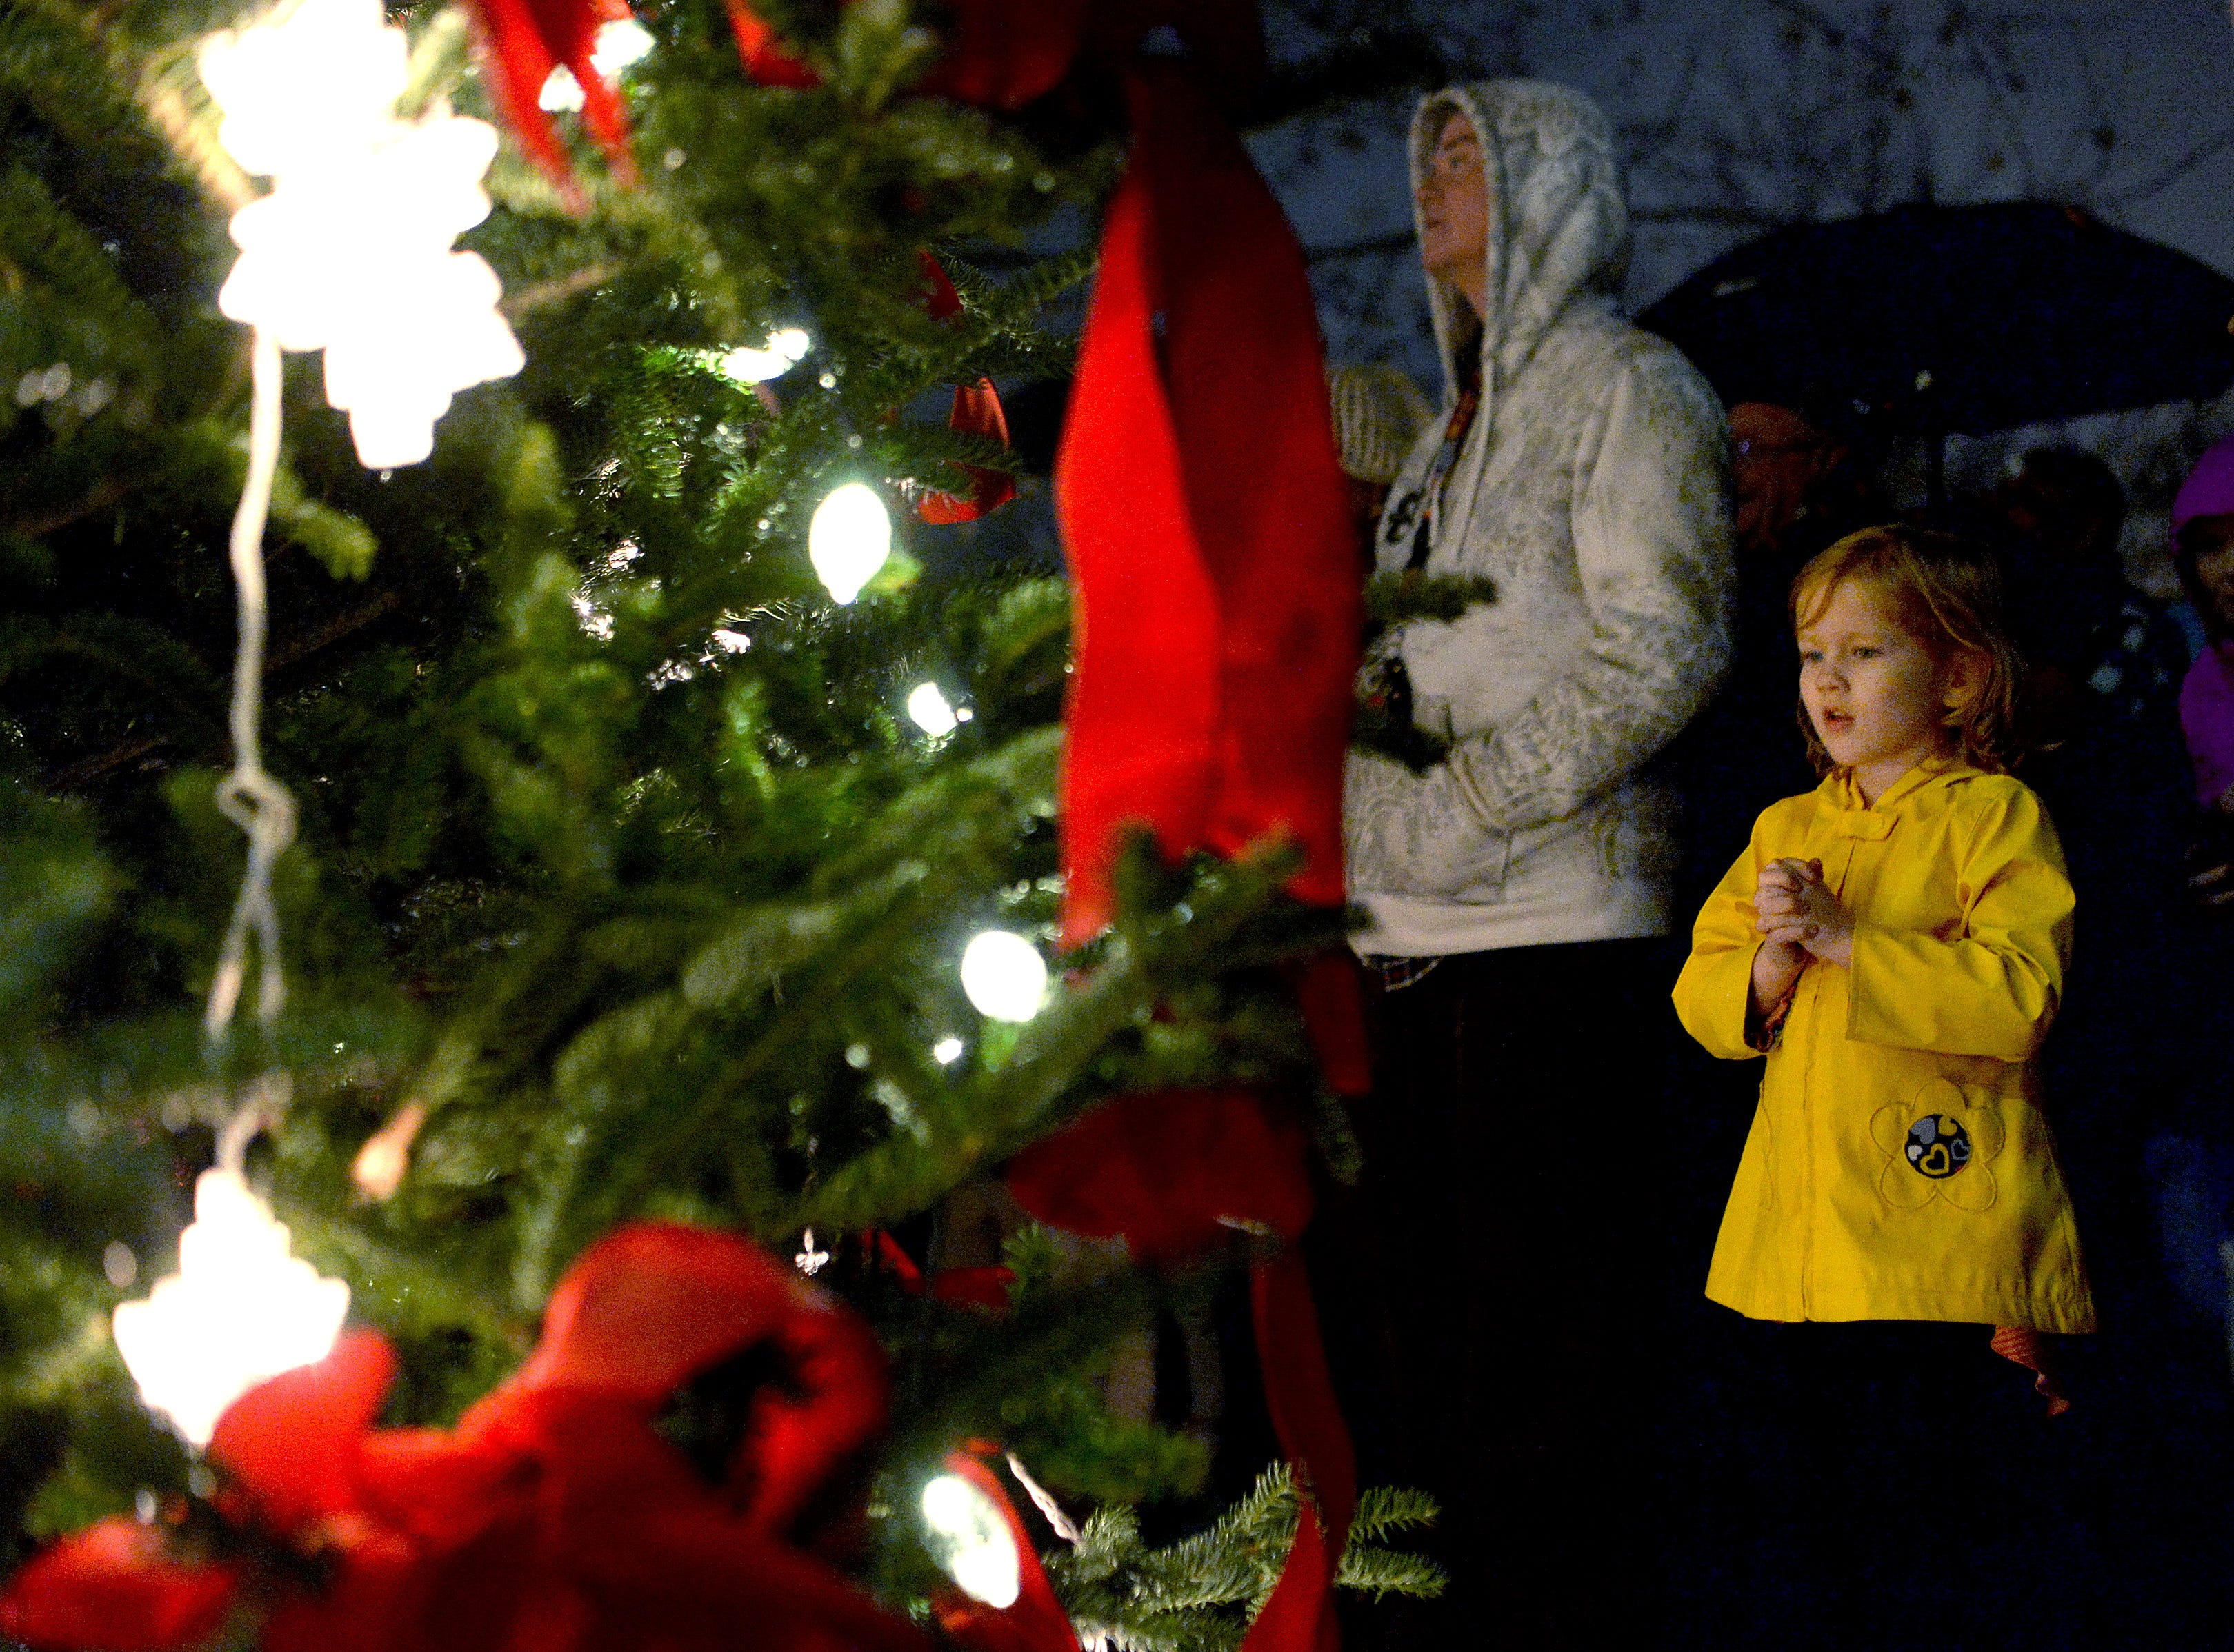 Laney Frady, 5, takes in the Christmas tree in Biltmore Village as the lights are lit during the 30th annual BIltmore Village Dickens Festival on Nov. 30, 2018.